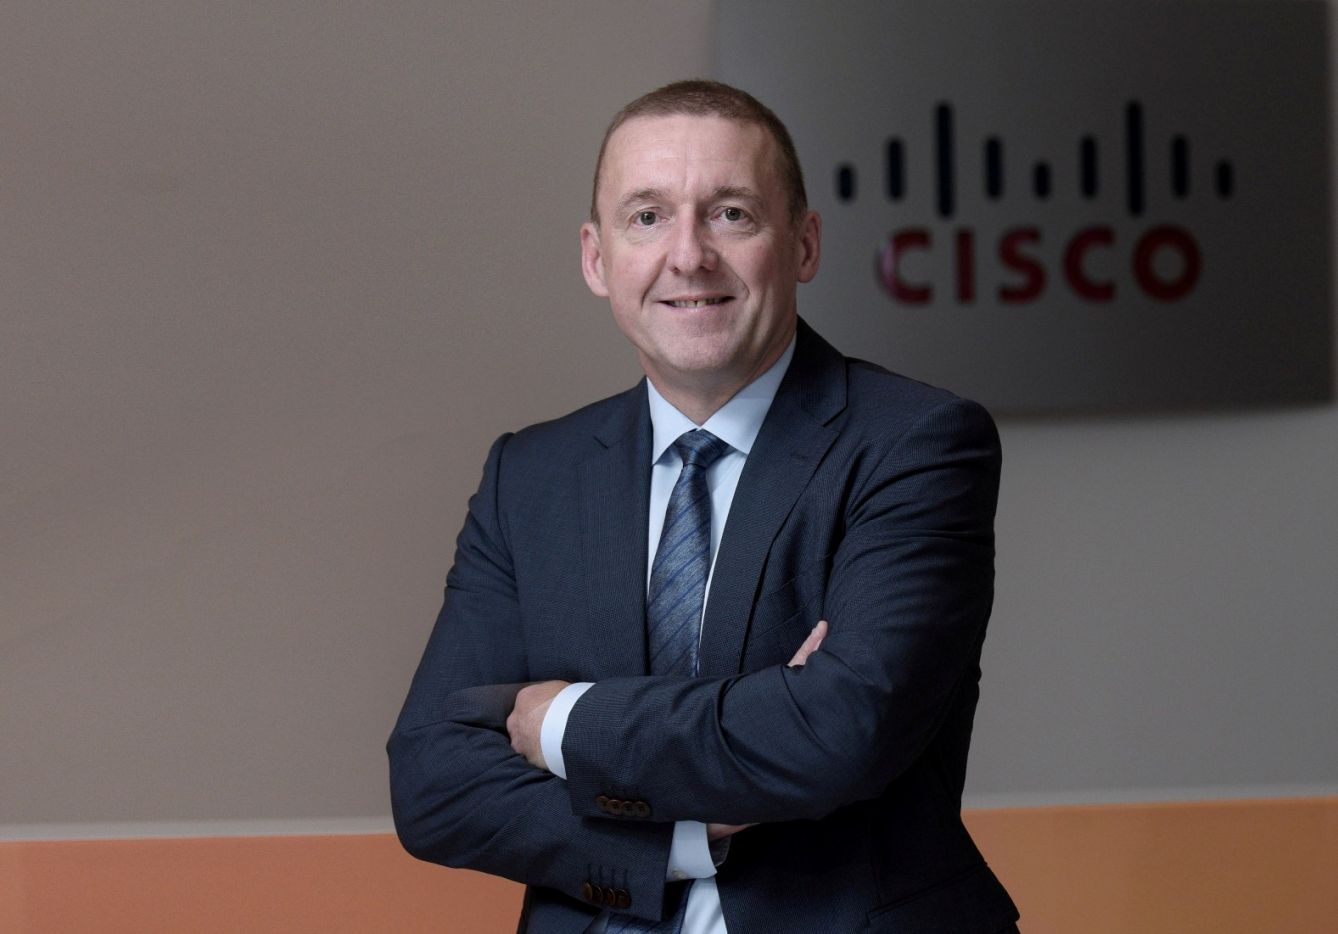 Mike Weston - Vice President - Cisco Middle East